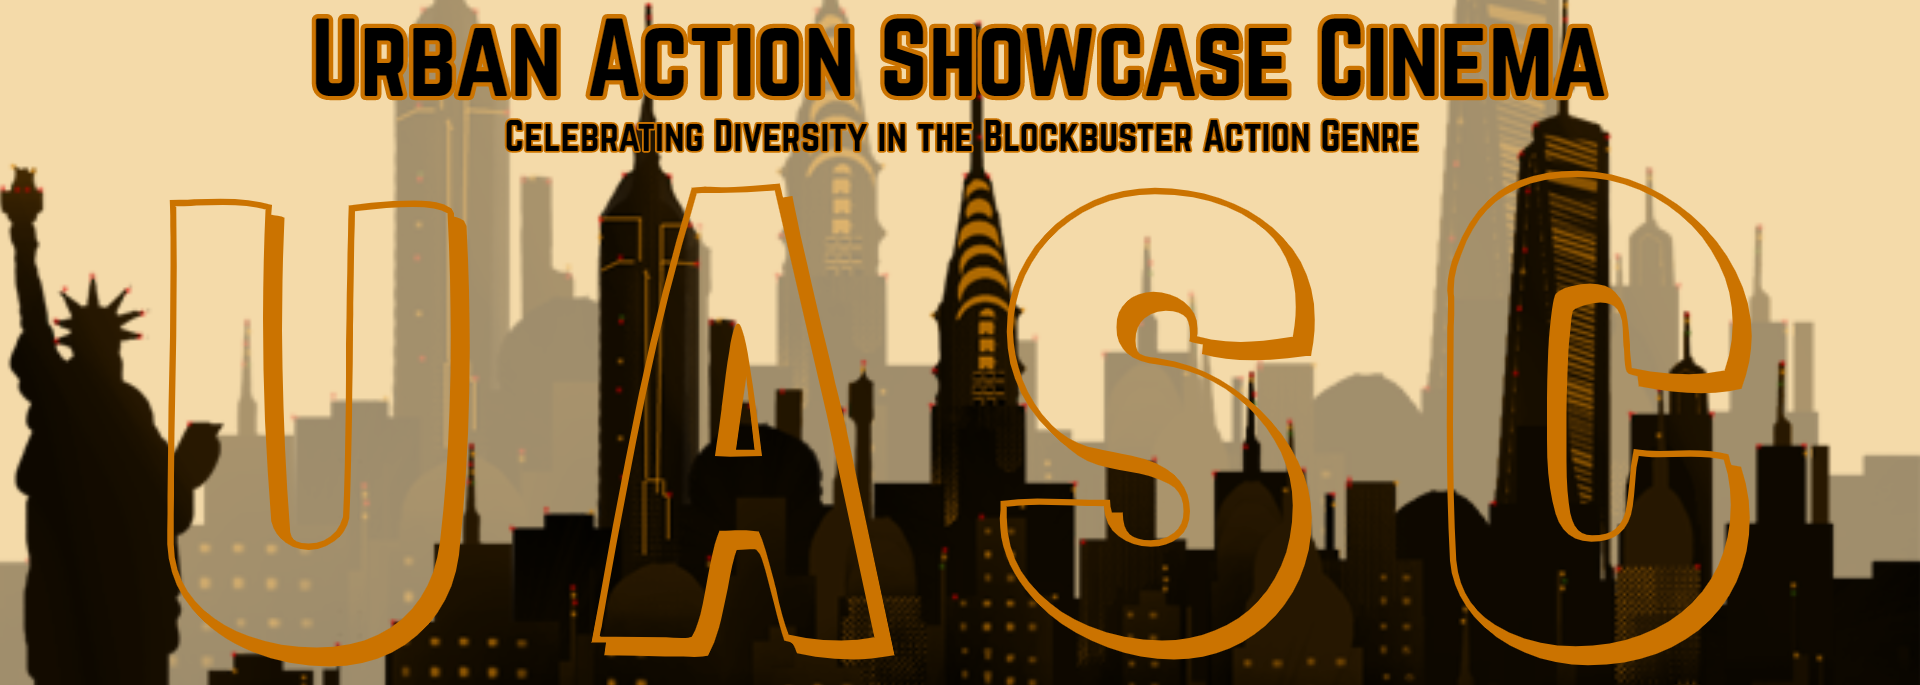 #Urban Action Showcase Cinema channel